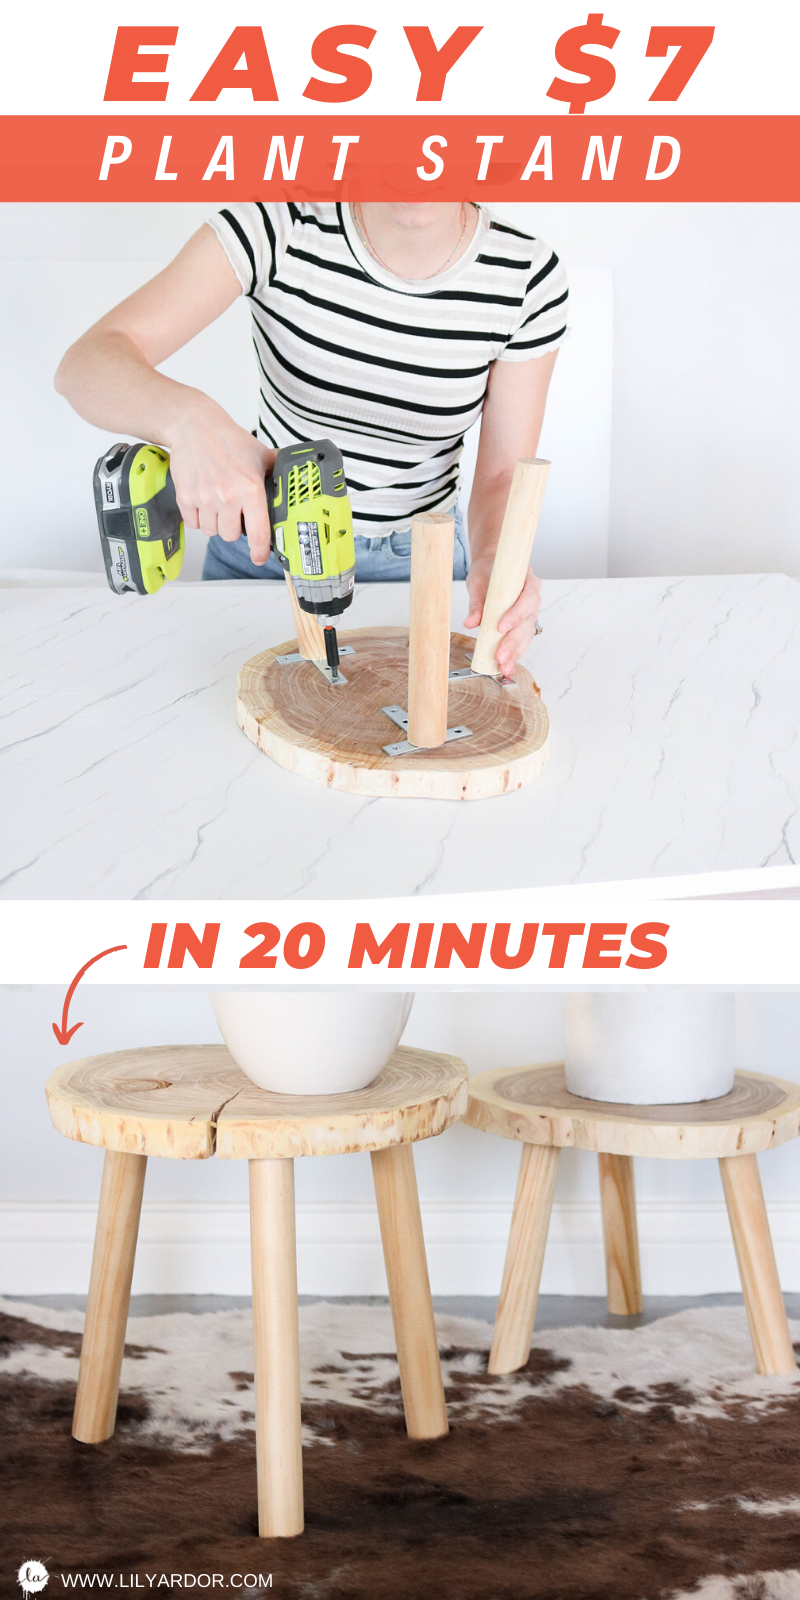 Here's how to make plant stands that only take 20 minutes to make and cost $7!  #diyhomedecor #plantstand #diydecor